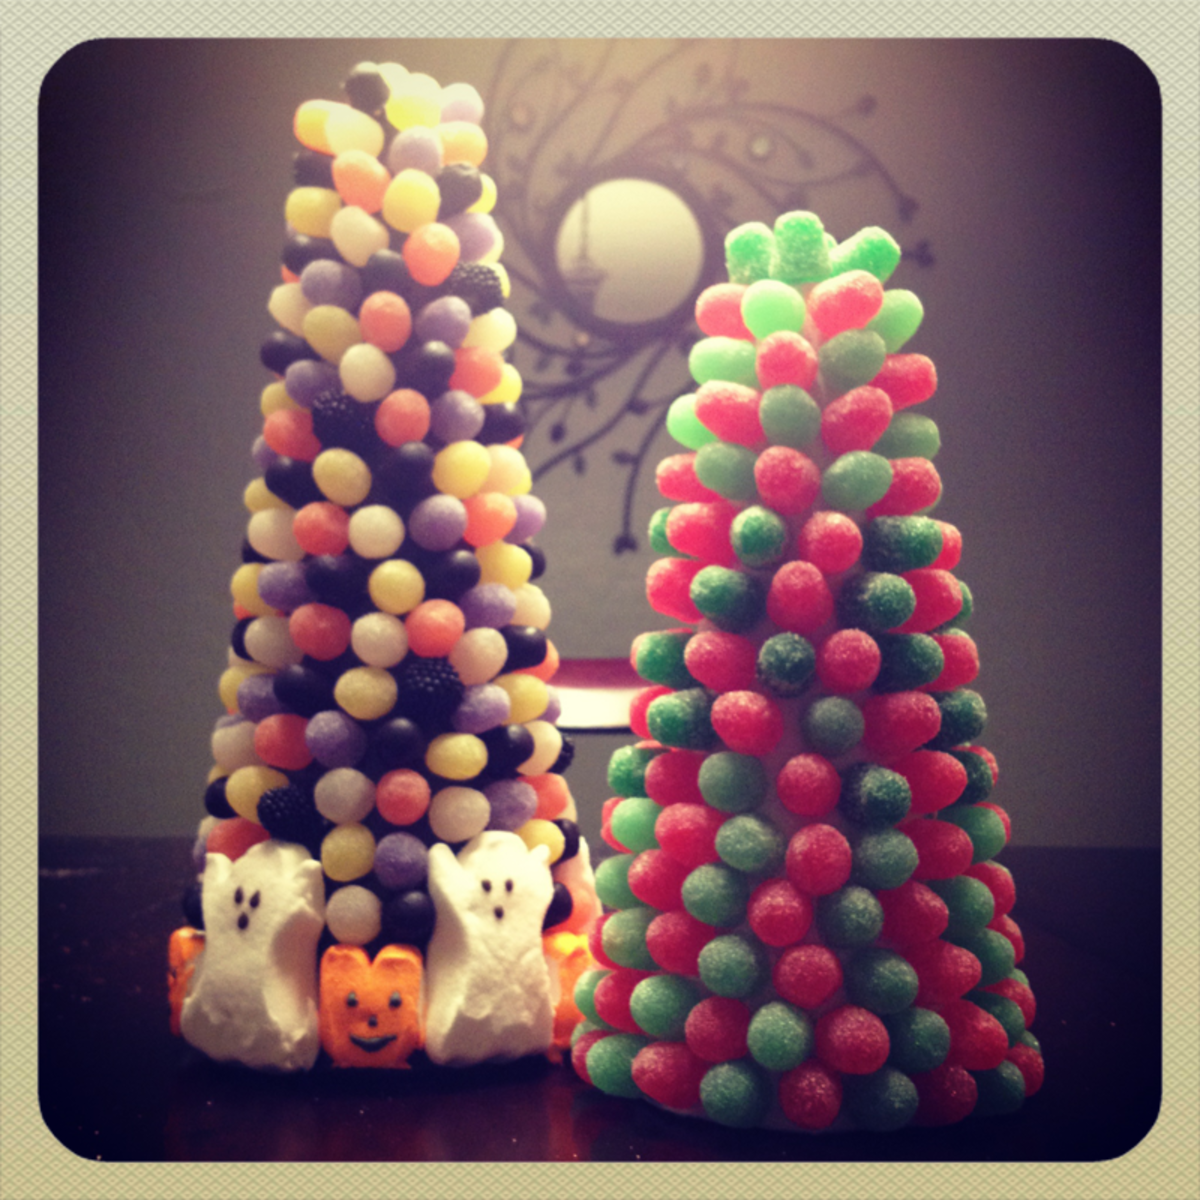 Gumdrop Trees: How to Make This Sweet Holiday Candy Craft